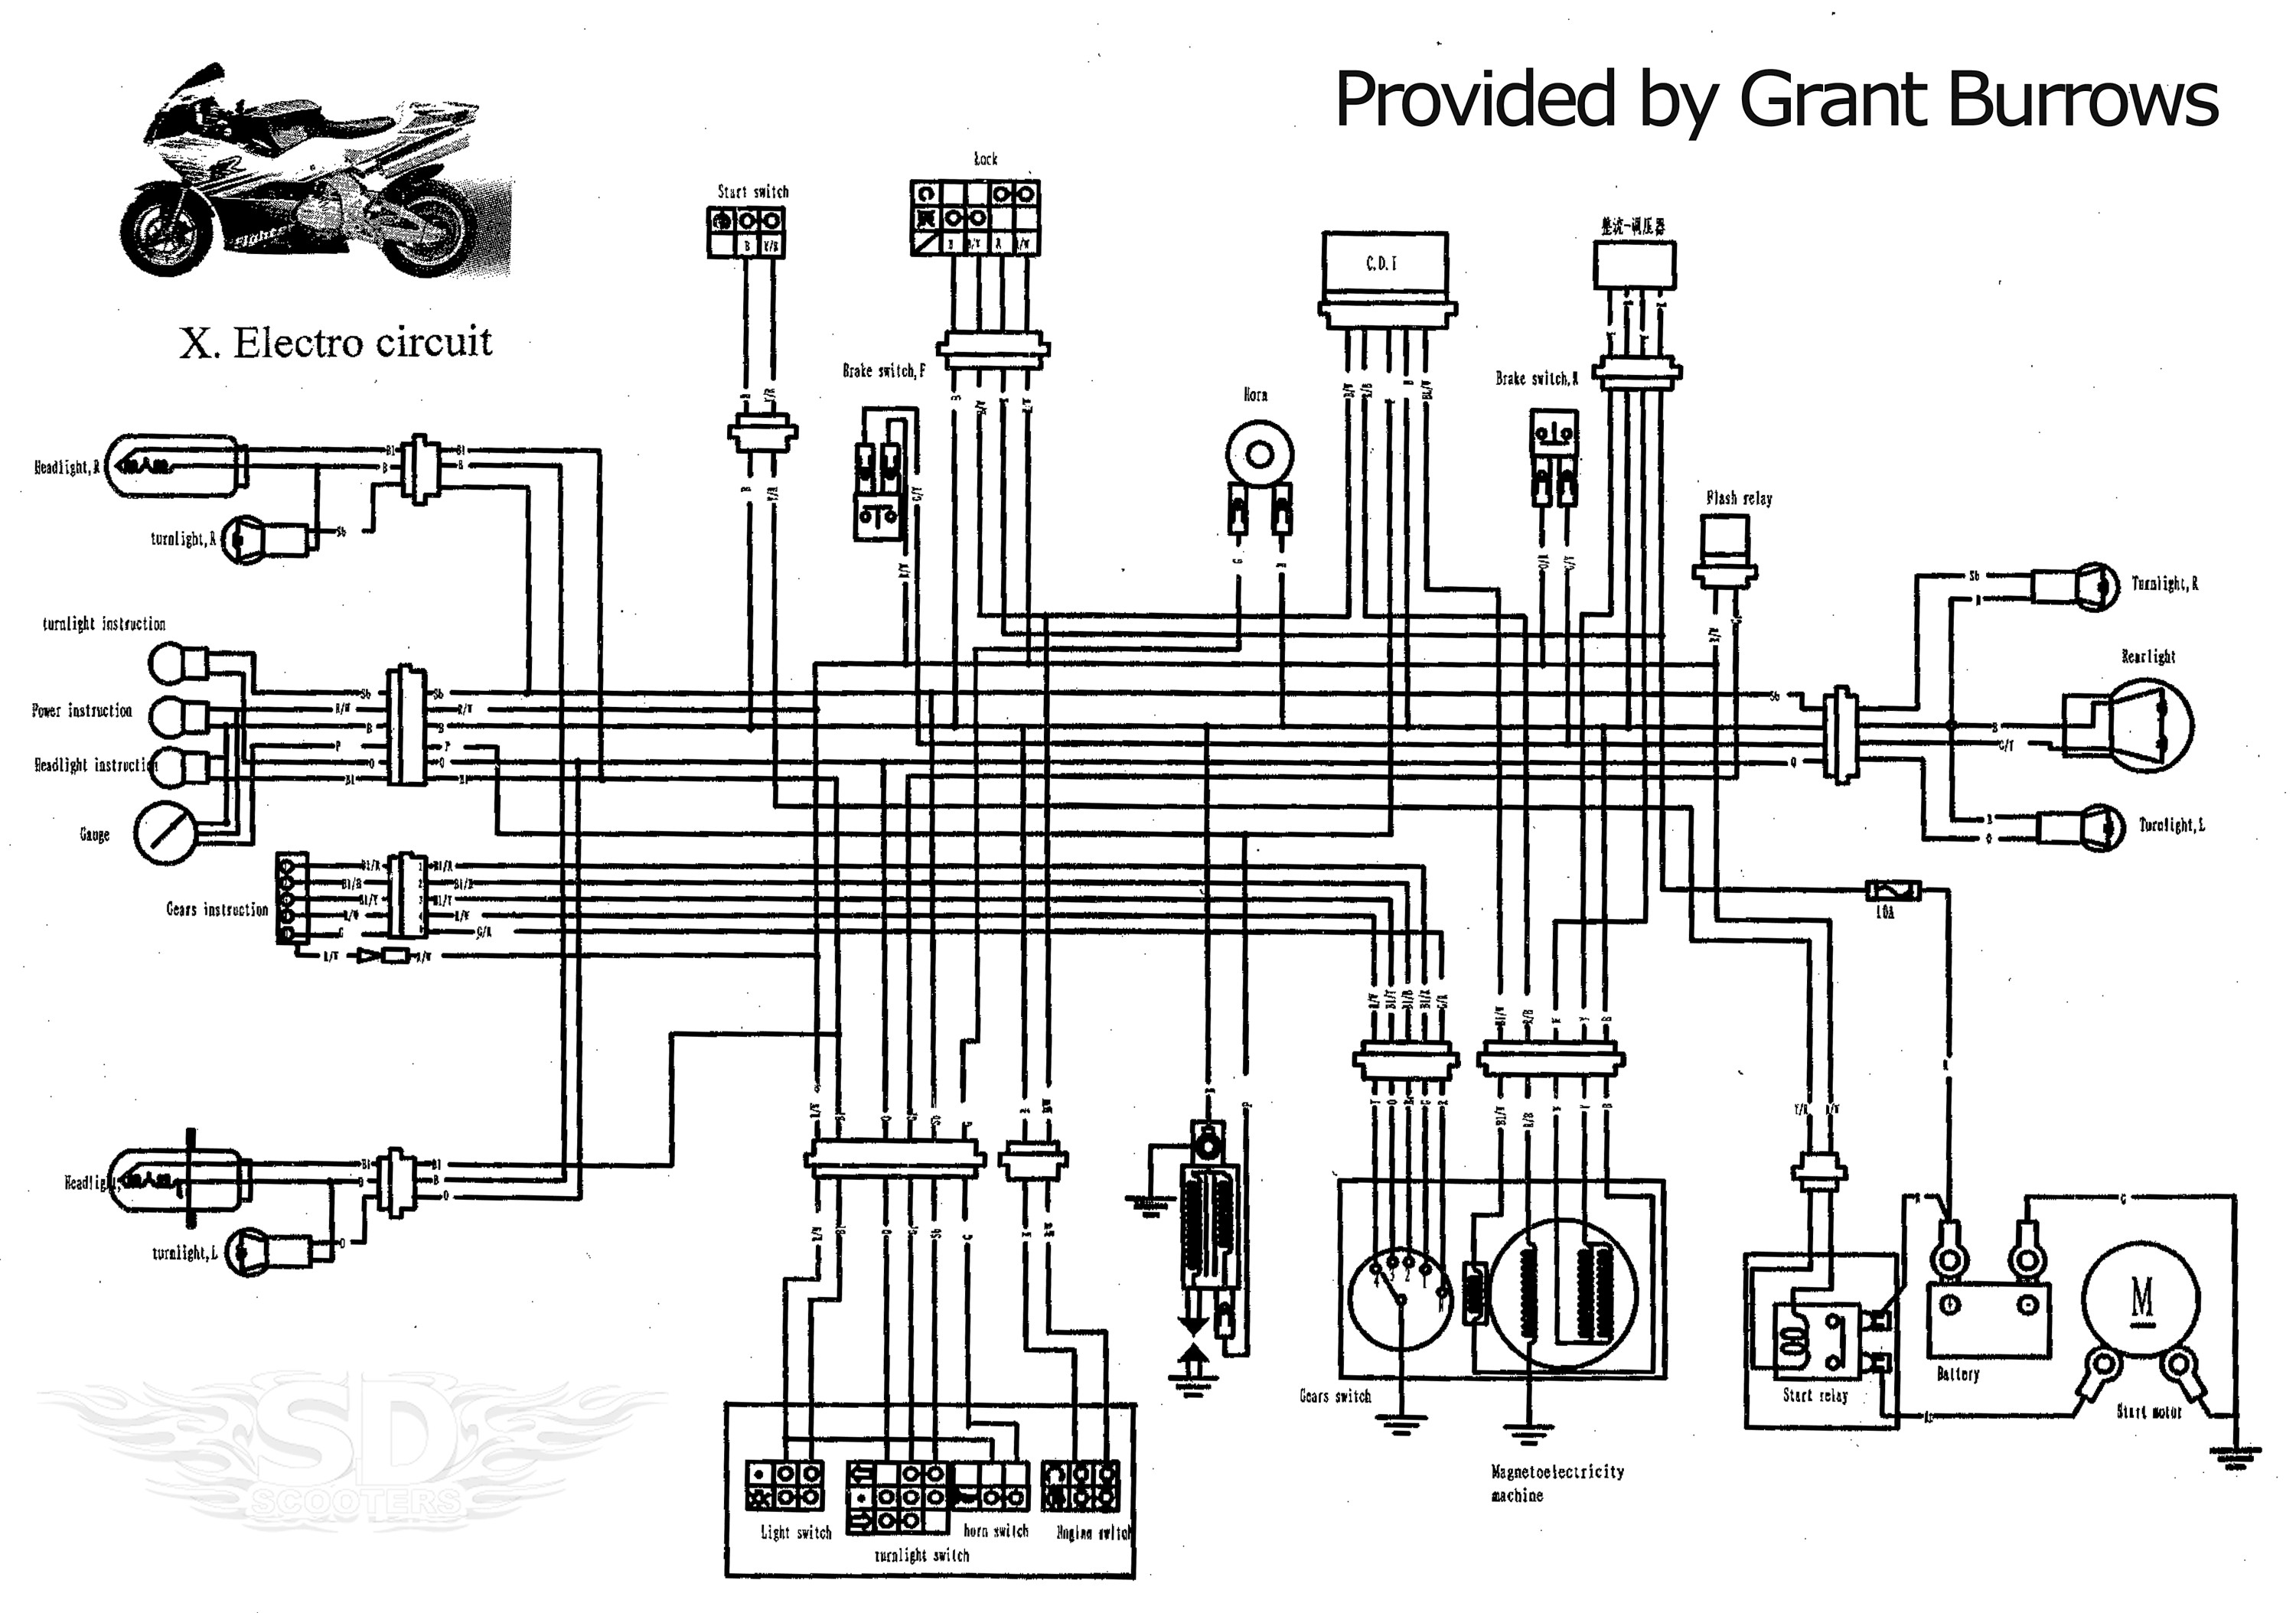 Astro Van Engine Diagram 1988 Gmc Truck Wiring 88 Safari Vandura Pocket Bike Harness Get Free Image About Of